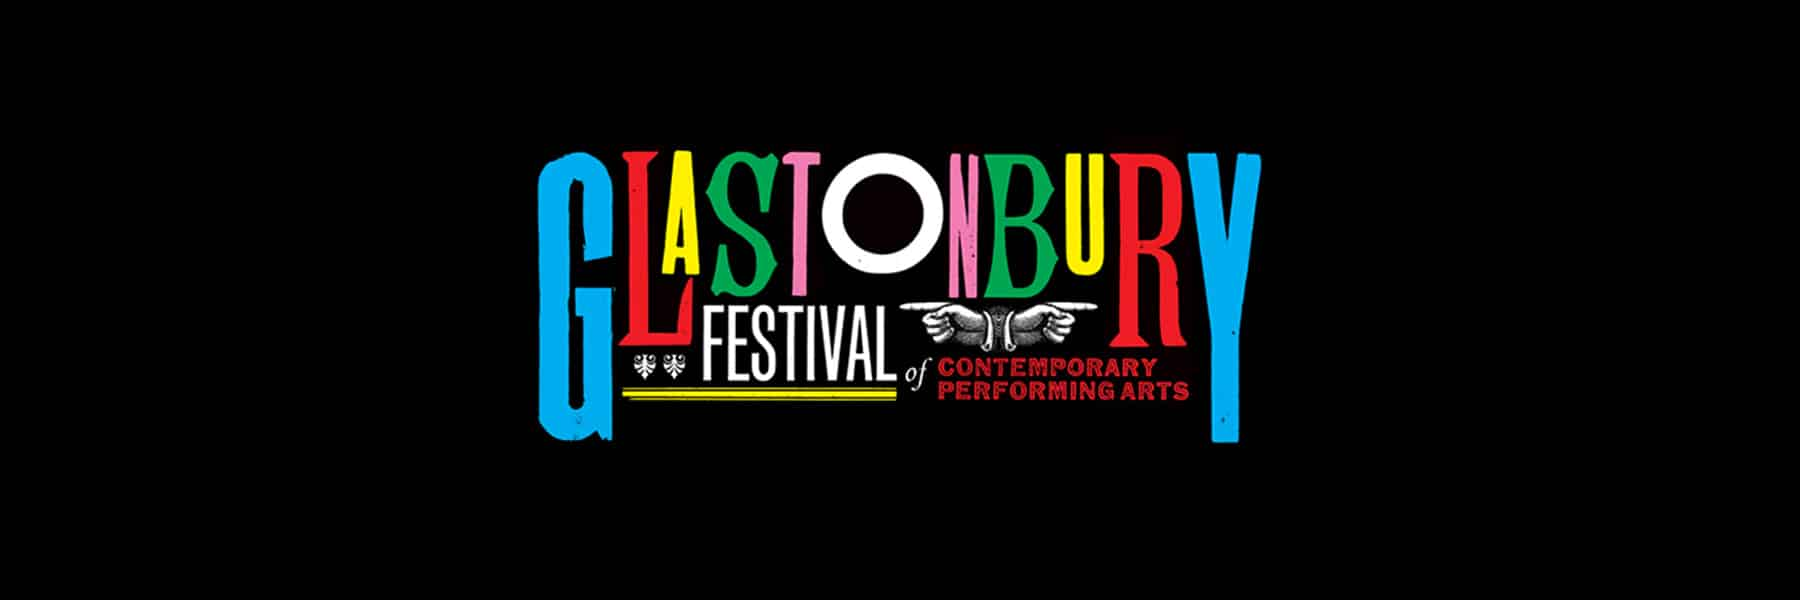 Get Ready for Glastonbury Festival 2020 ...